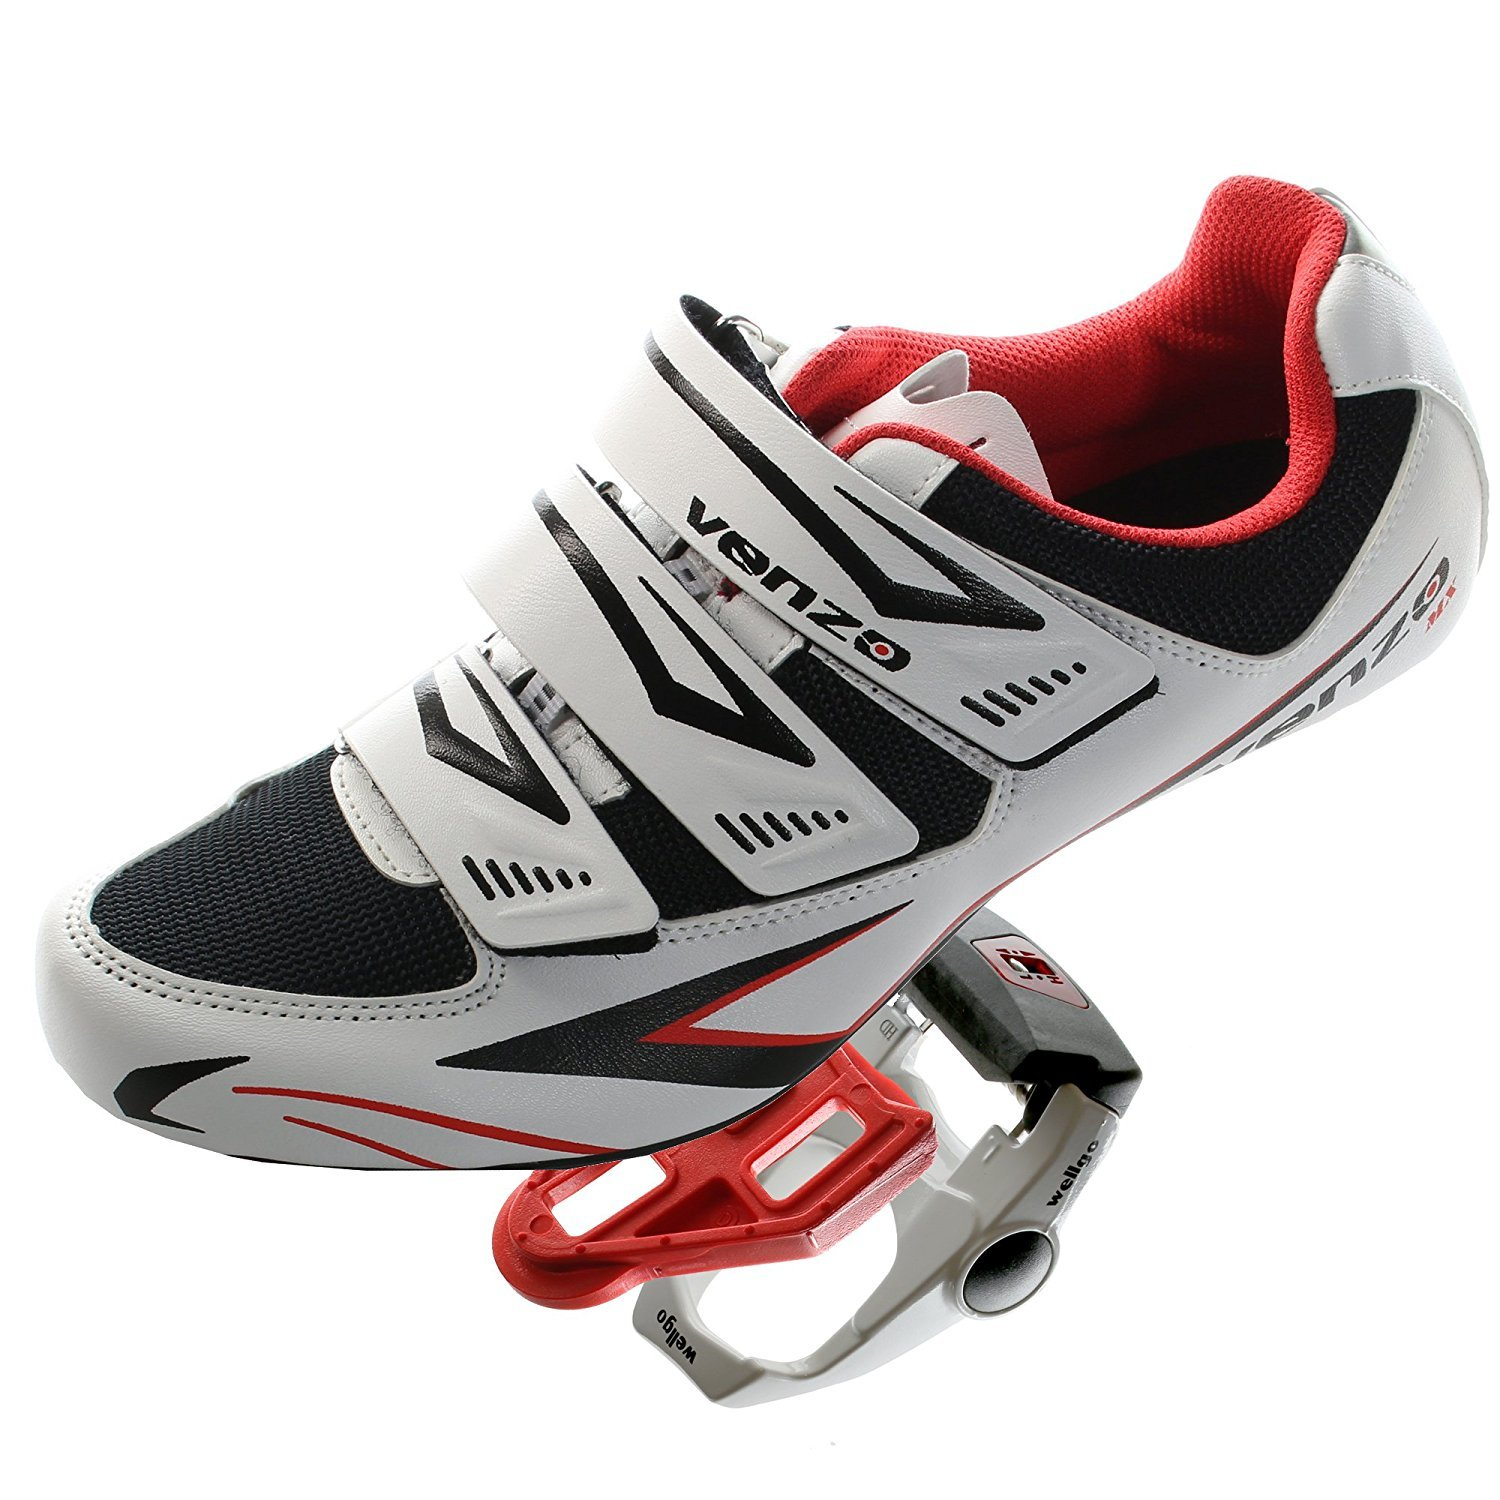 Venzo Road Bike For Shimano SPD SL Look Cycling Bicycle Shoes & Pedals B00PJHNZUQ Europe 42.5, US Men 8.5